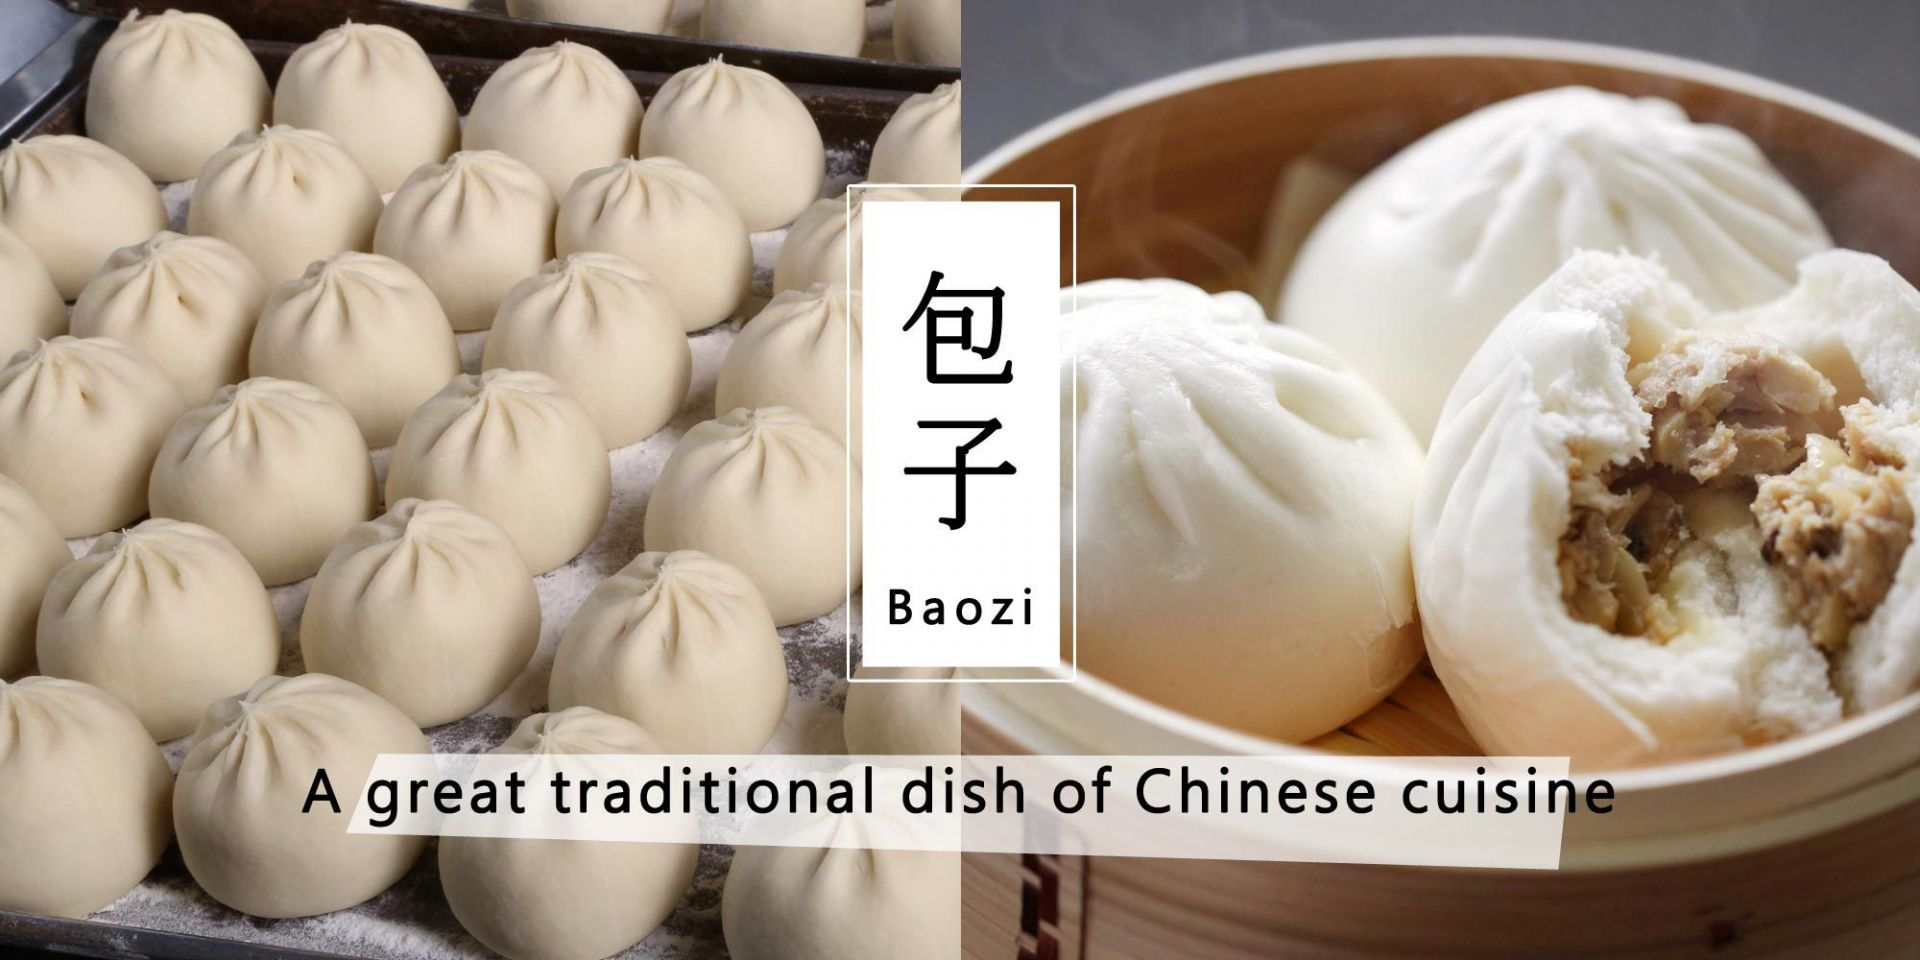 【Food Industry Trends】Baozi, a great traditional dish of Chinese cuisine.